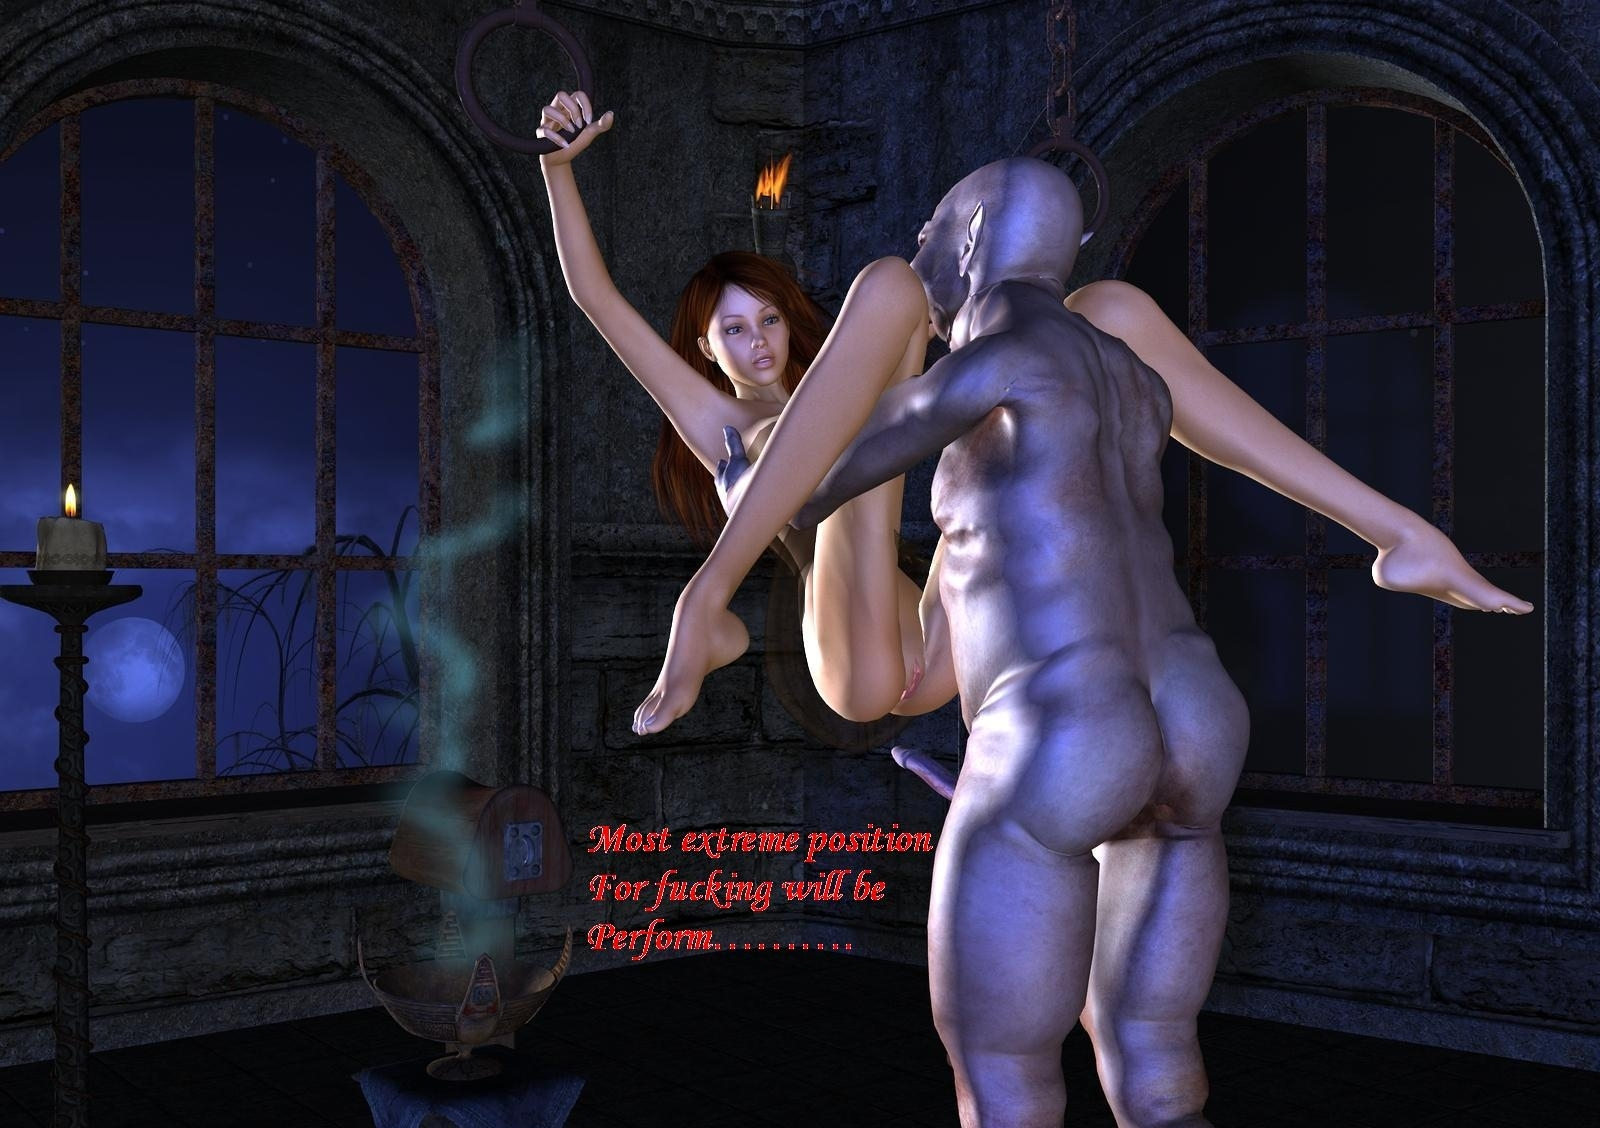 Mosters vs aliens porn pic sex movie